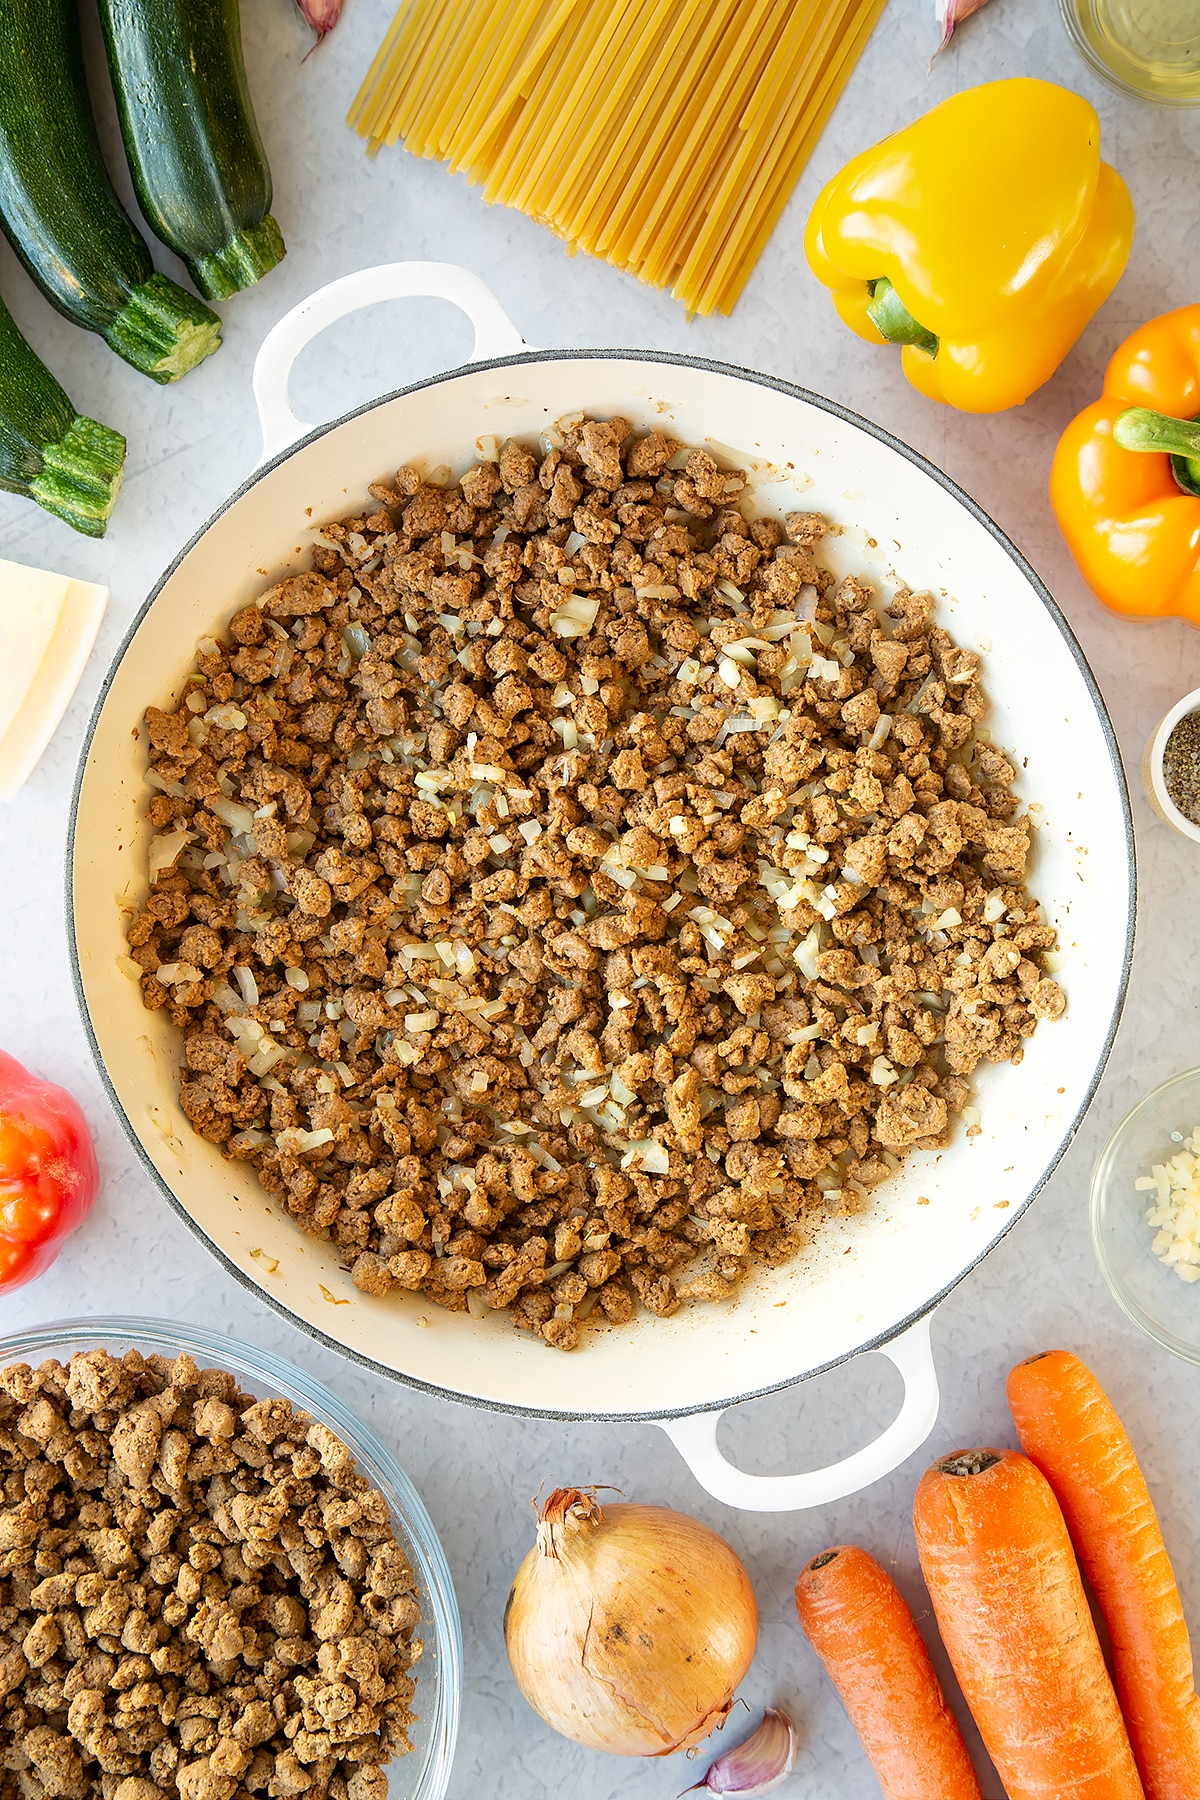 Veggie mince, garlic and onion sweated in a large pan. Ingredients to make one pot vegan bolognese surround the pan.